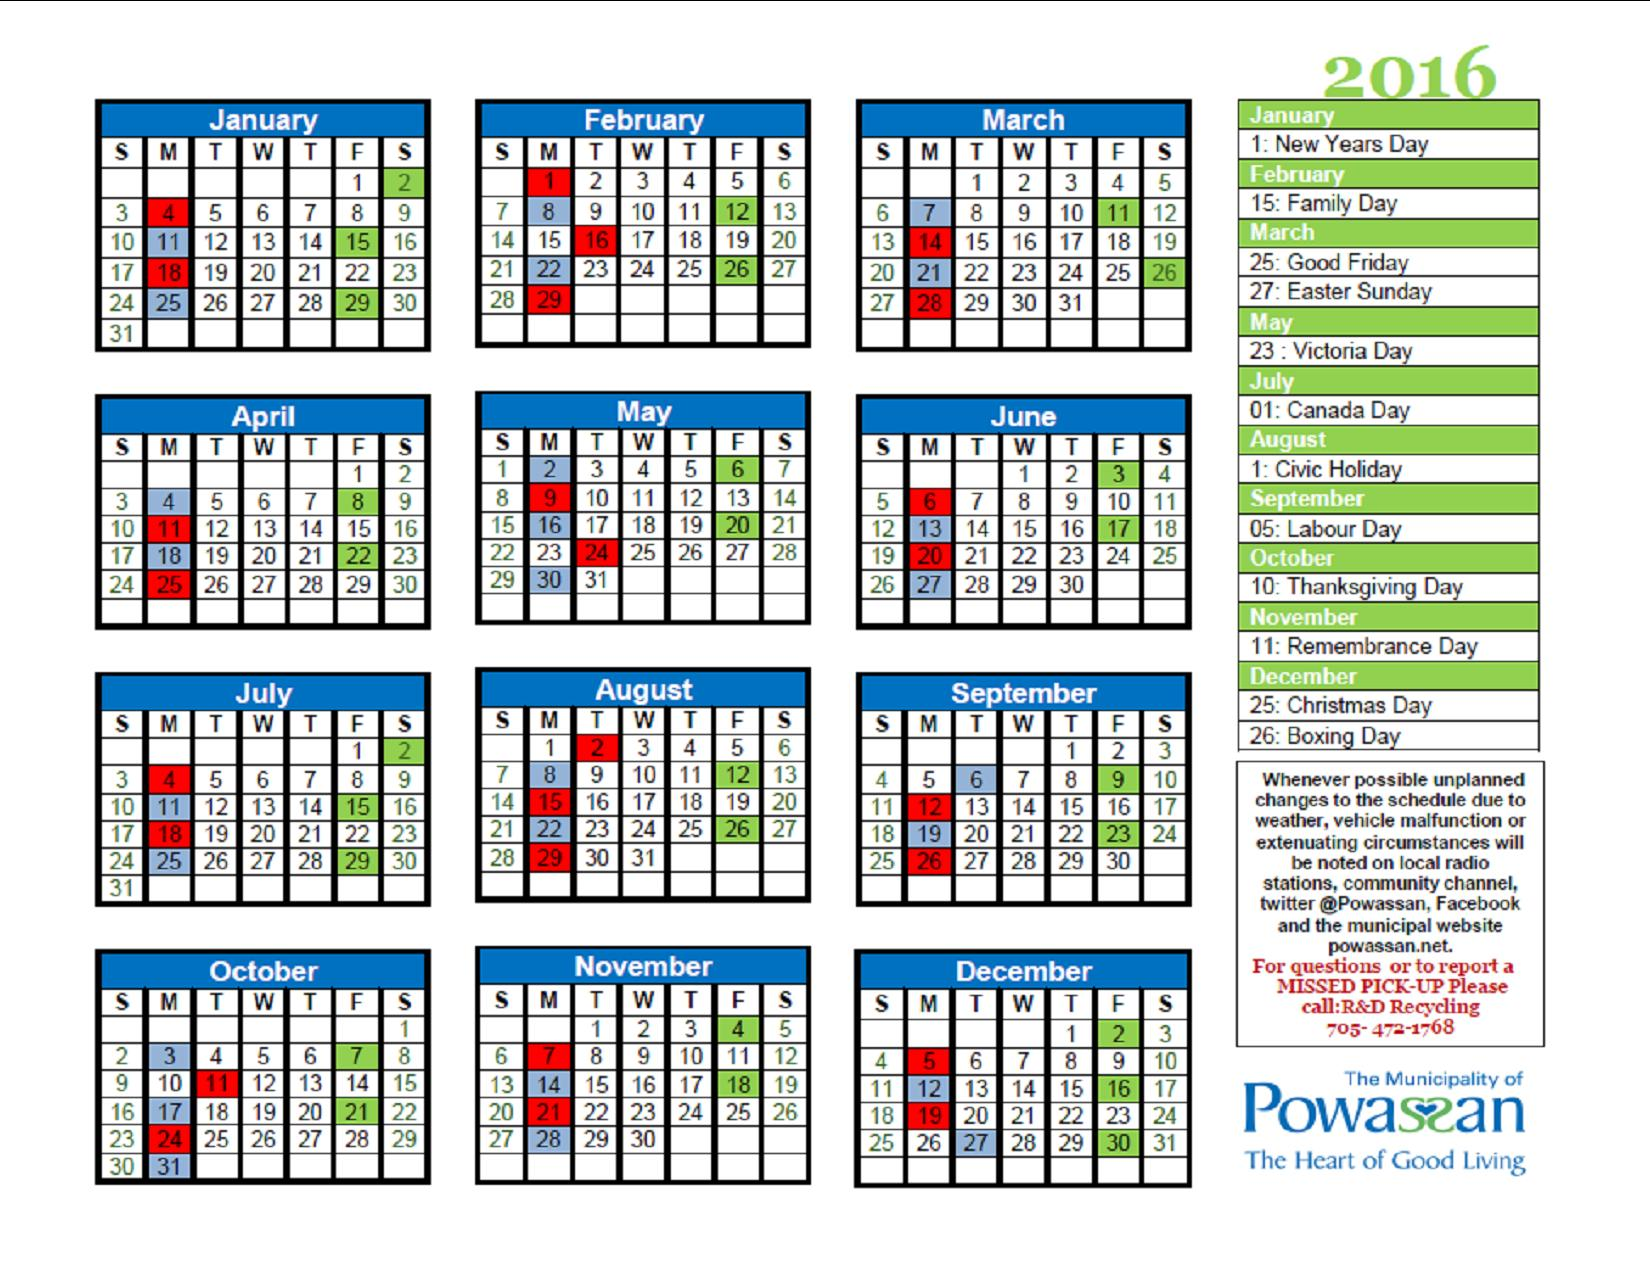 2016 Recycling Schedule